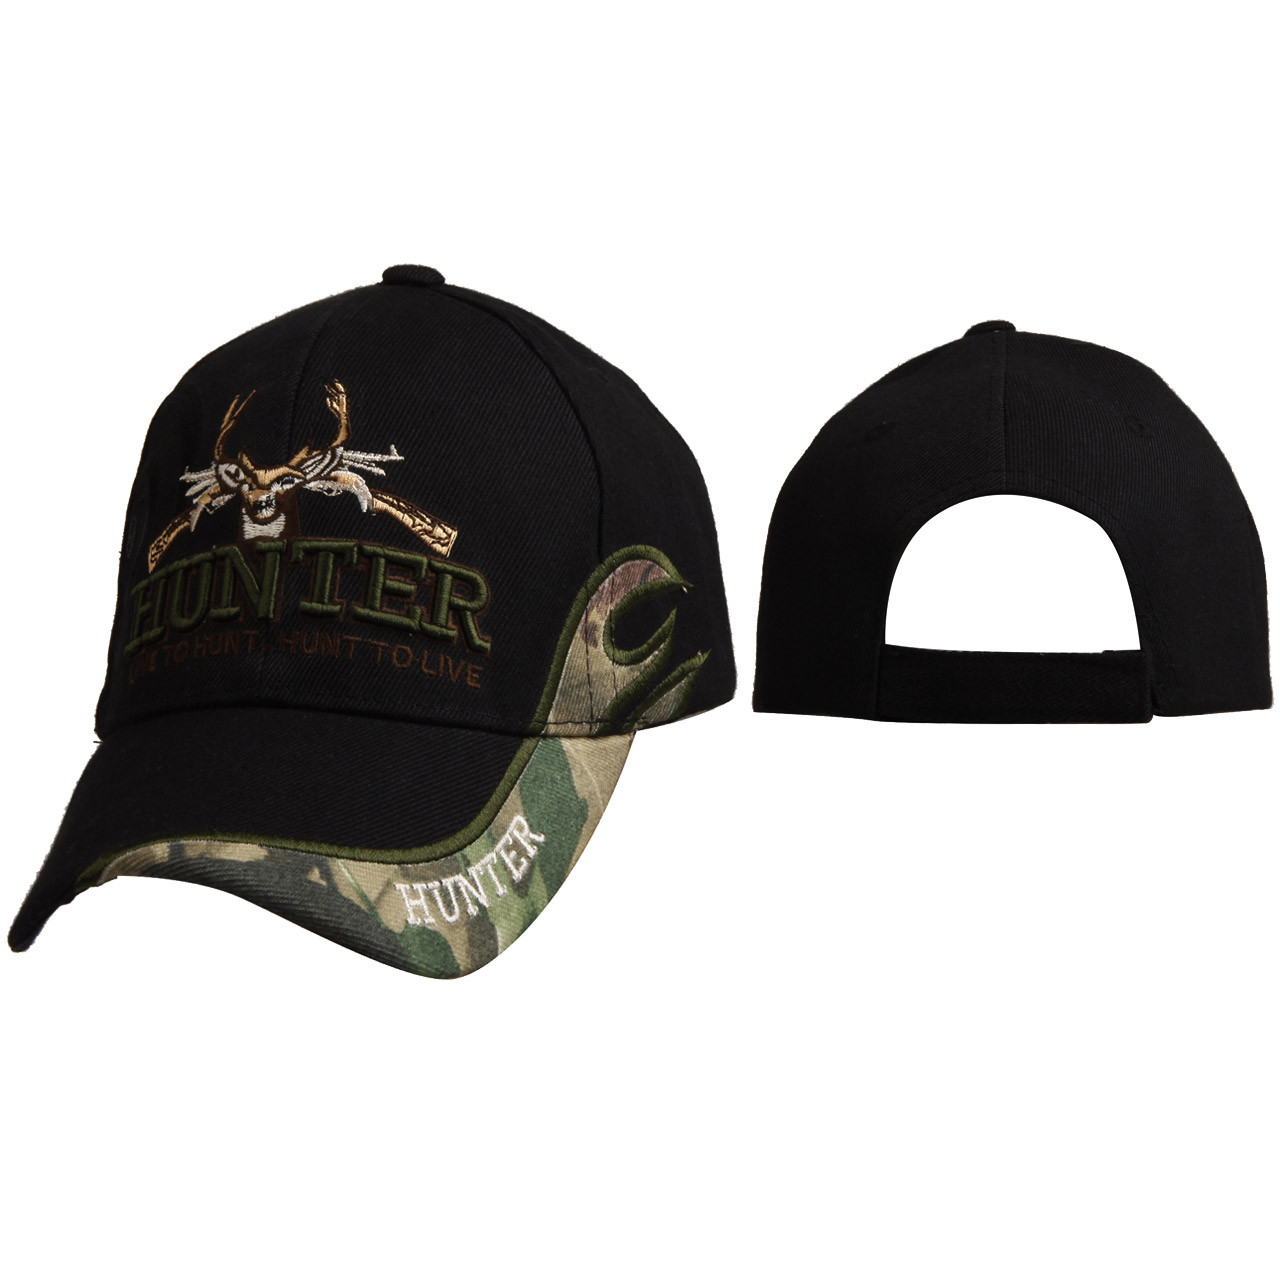 """Wholesale Hunting Cap C6013 """"HUNTER Live to Hunt. Hunt to Live"""""""